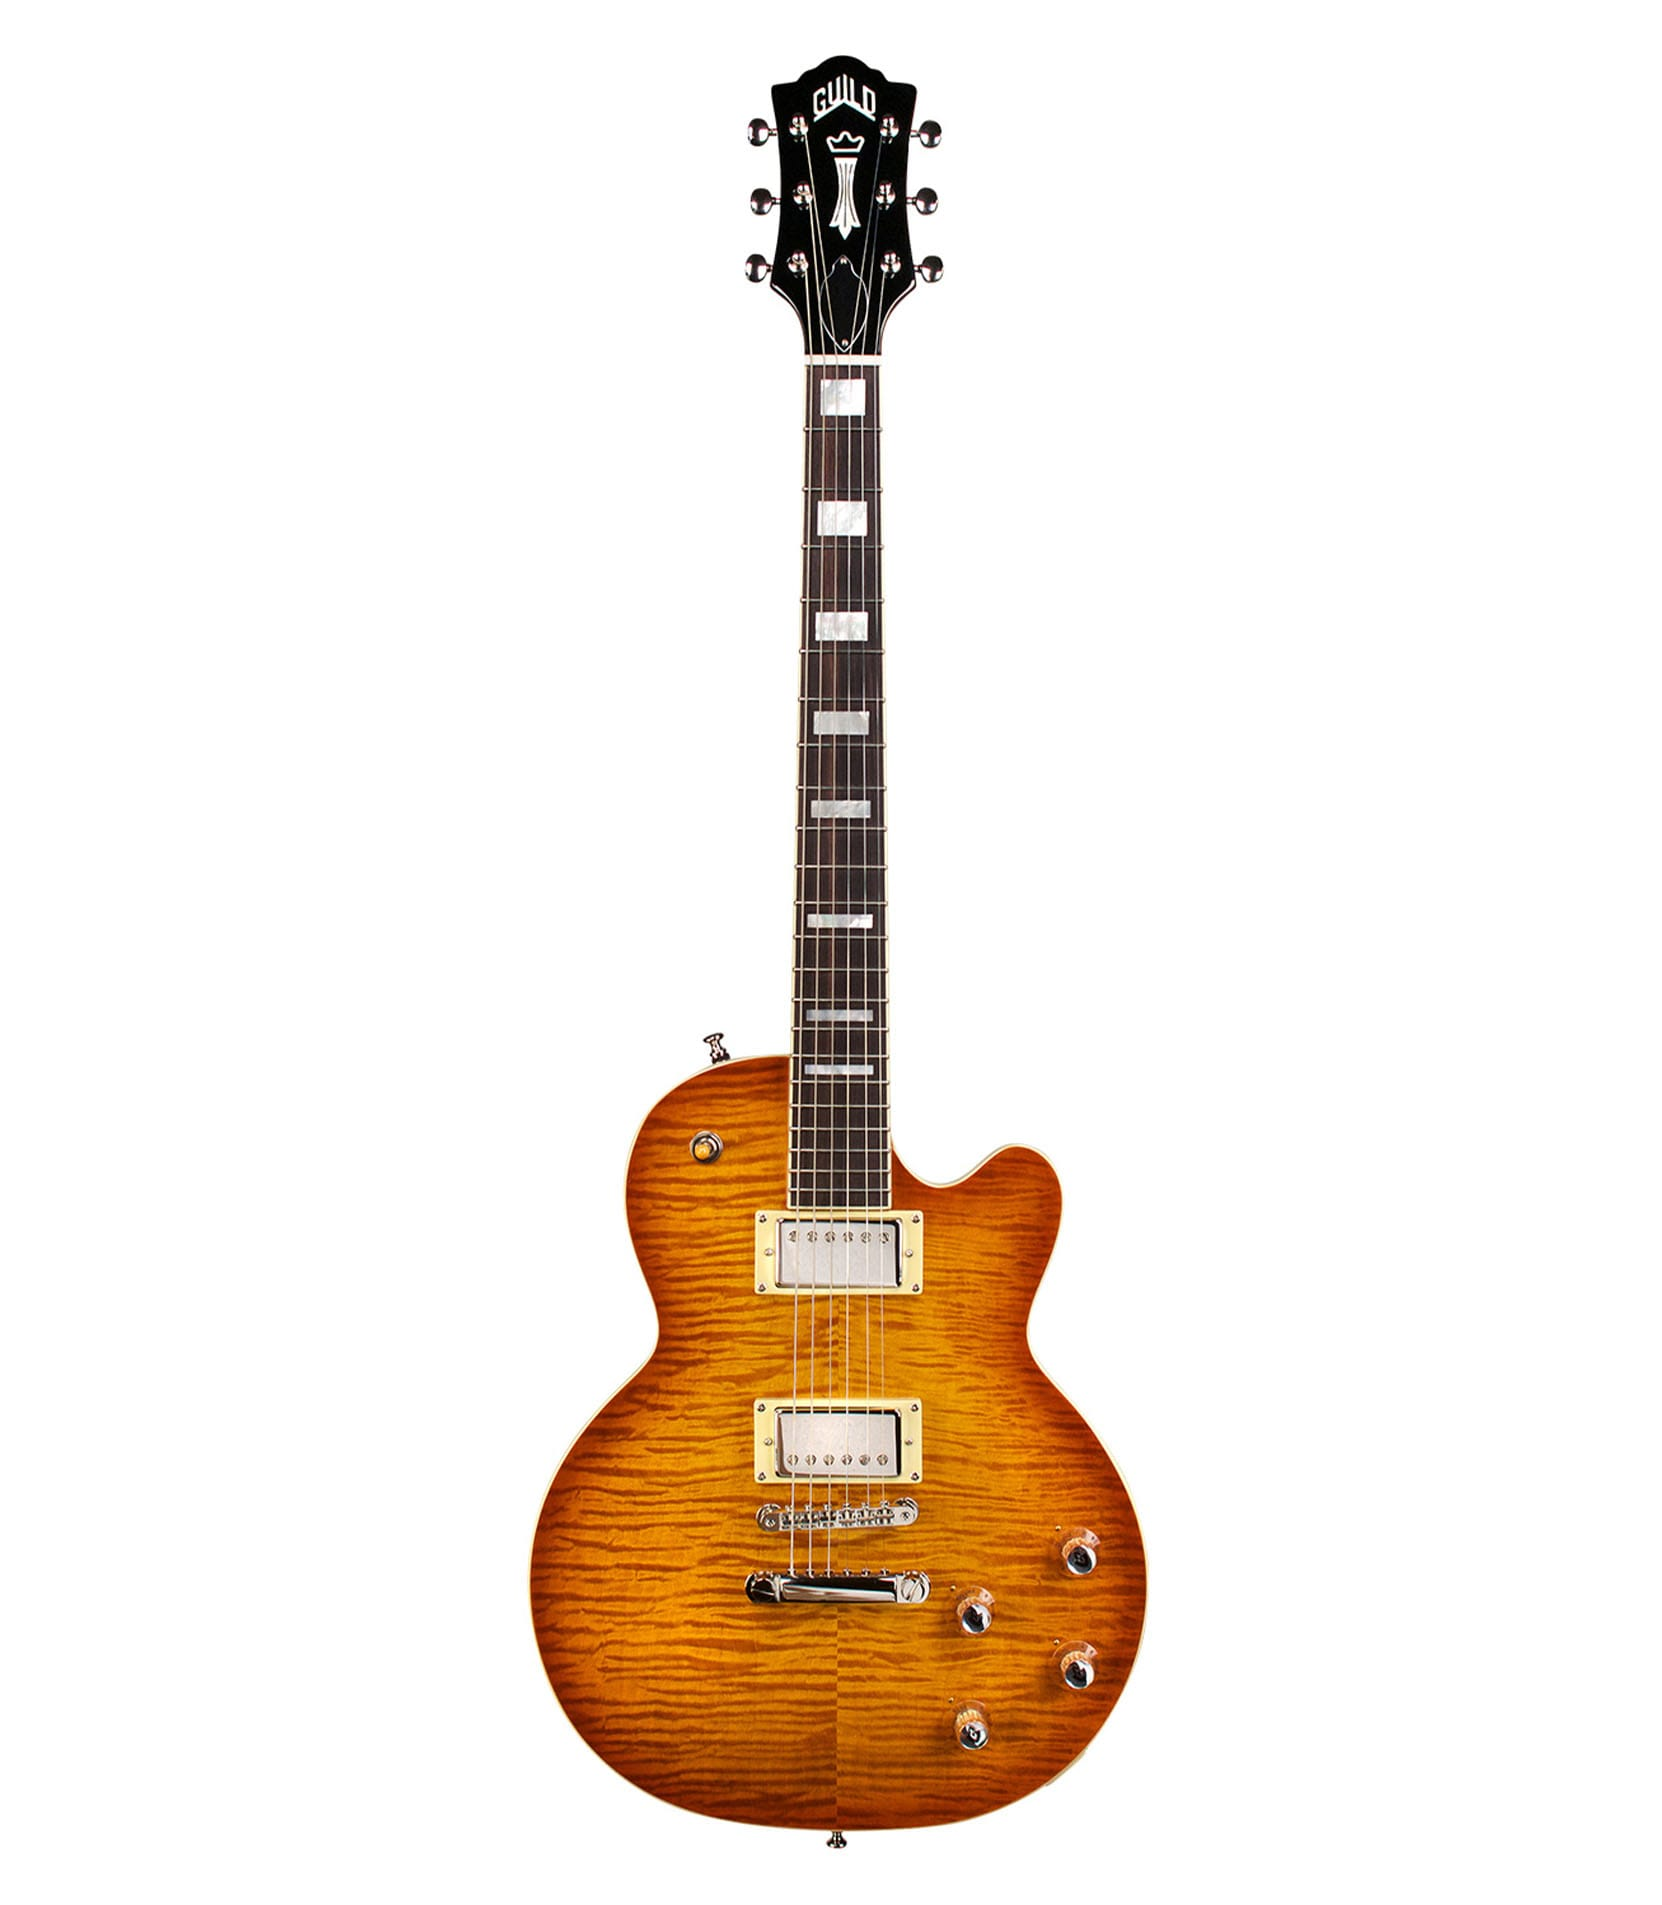 Buy Guild - Bluesbird Guitar Iced Tea Burst Finish